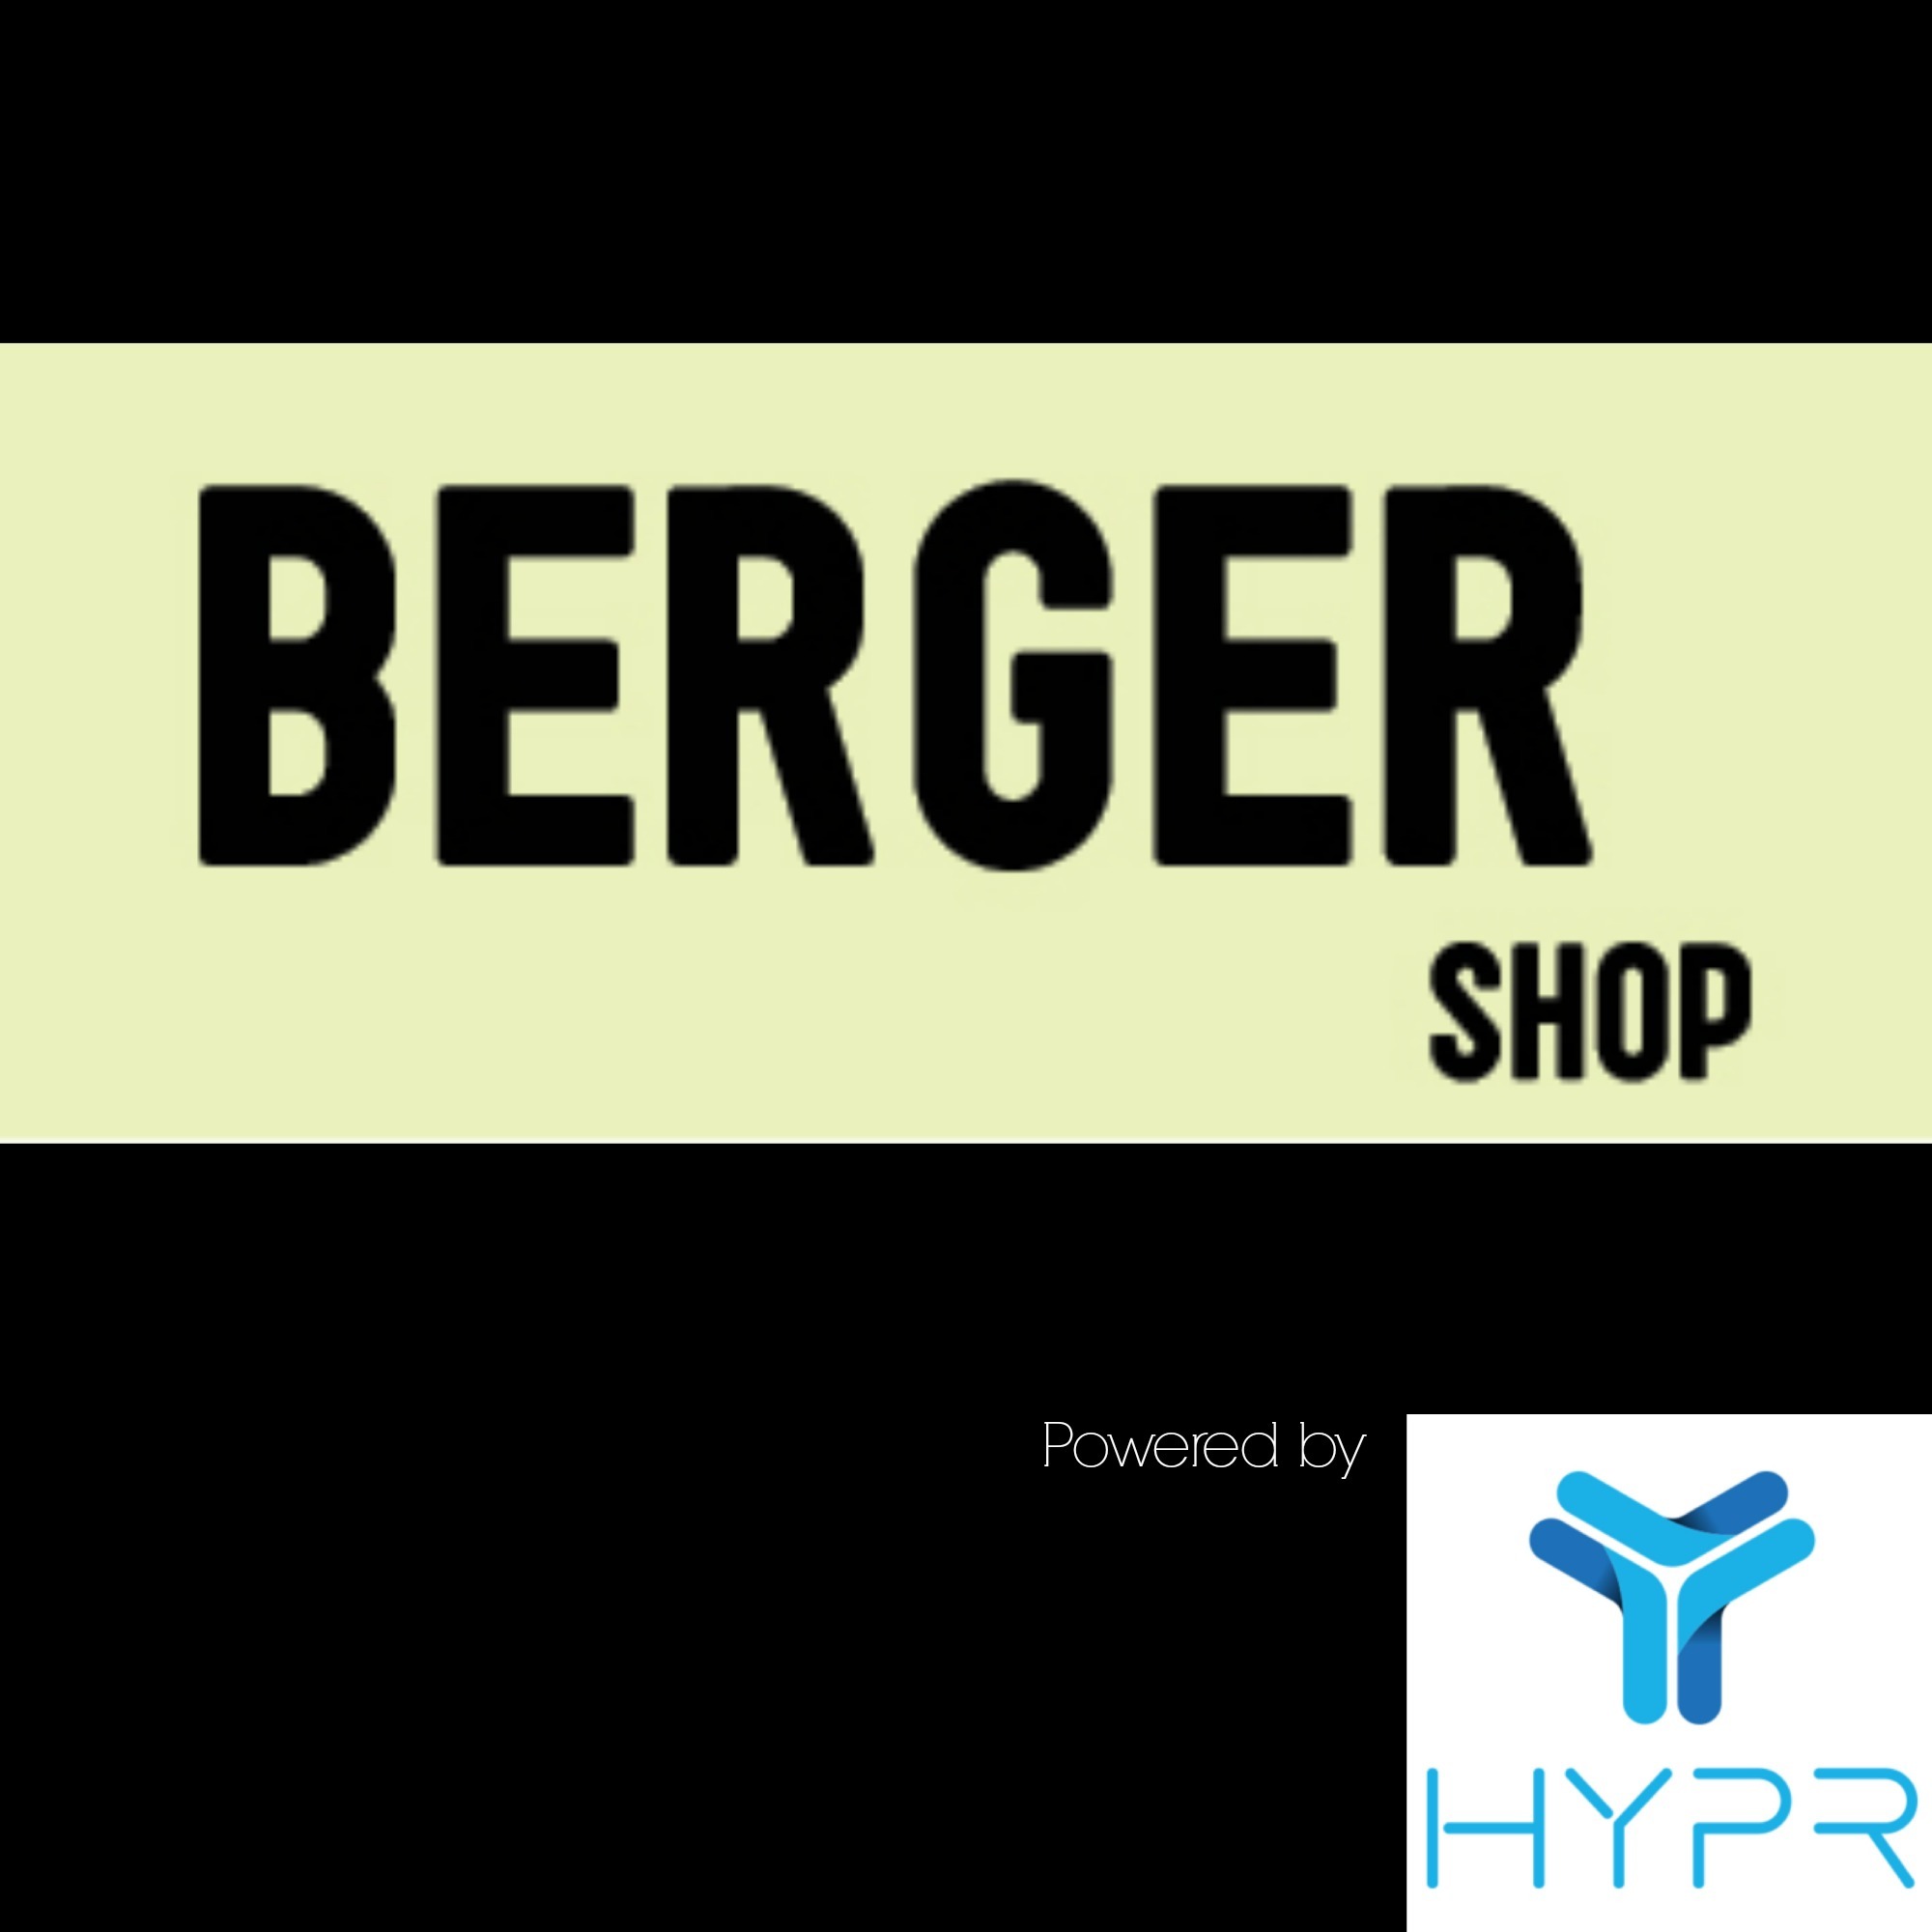 Inside The Berger Shop